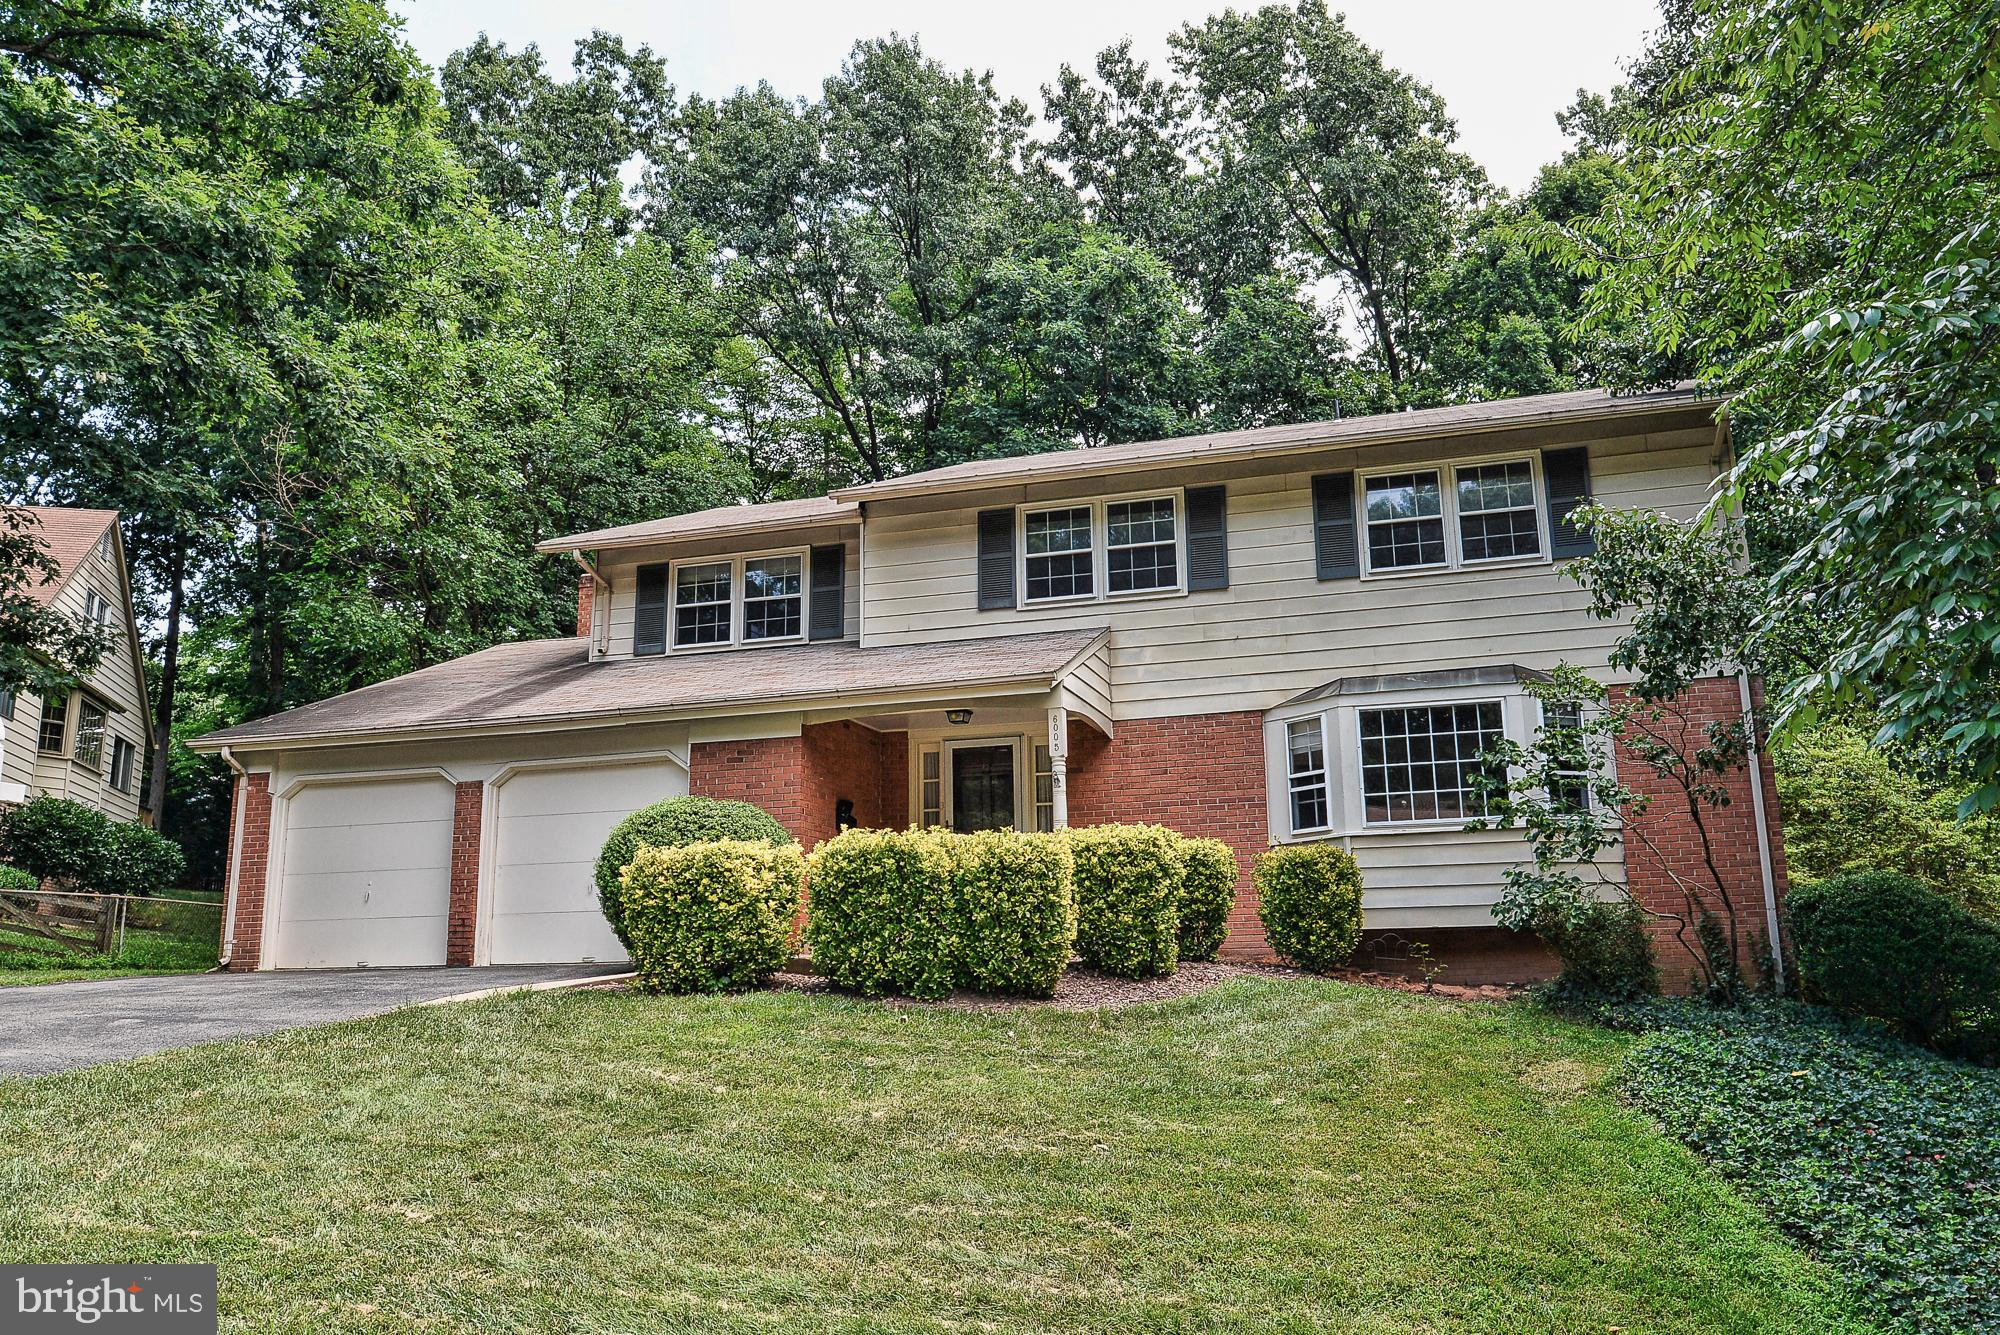 5 BEDROOMS UPSTAIRS! Sought after location in CARDINAL FOREST! This Beautiful 5bd features a 2 car garage, bright eat-in kit w/breakfast nook, huge family room w/ brick hearth off kit, gorgeous hardwoods, spacious bedrooms, master w/walk-in closet & FULL WALK OUT BASEMENT! Walking Distance to both Schools! 2 community Pools you can join! One of Cardinal Forest's Largest Models! Top Tier School district!  Amazing opportunity! Easy commute to Fort Belvoir, VRE, I-95 and tons of natural trails!  Also For Rent! Owner will consider any Lease Purchase Option,  Agent Owned!